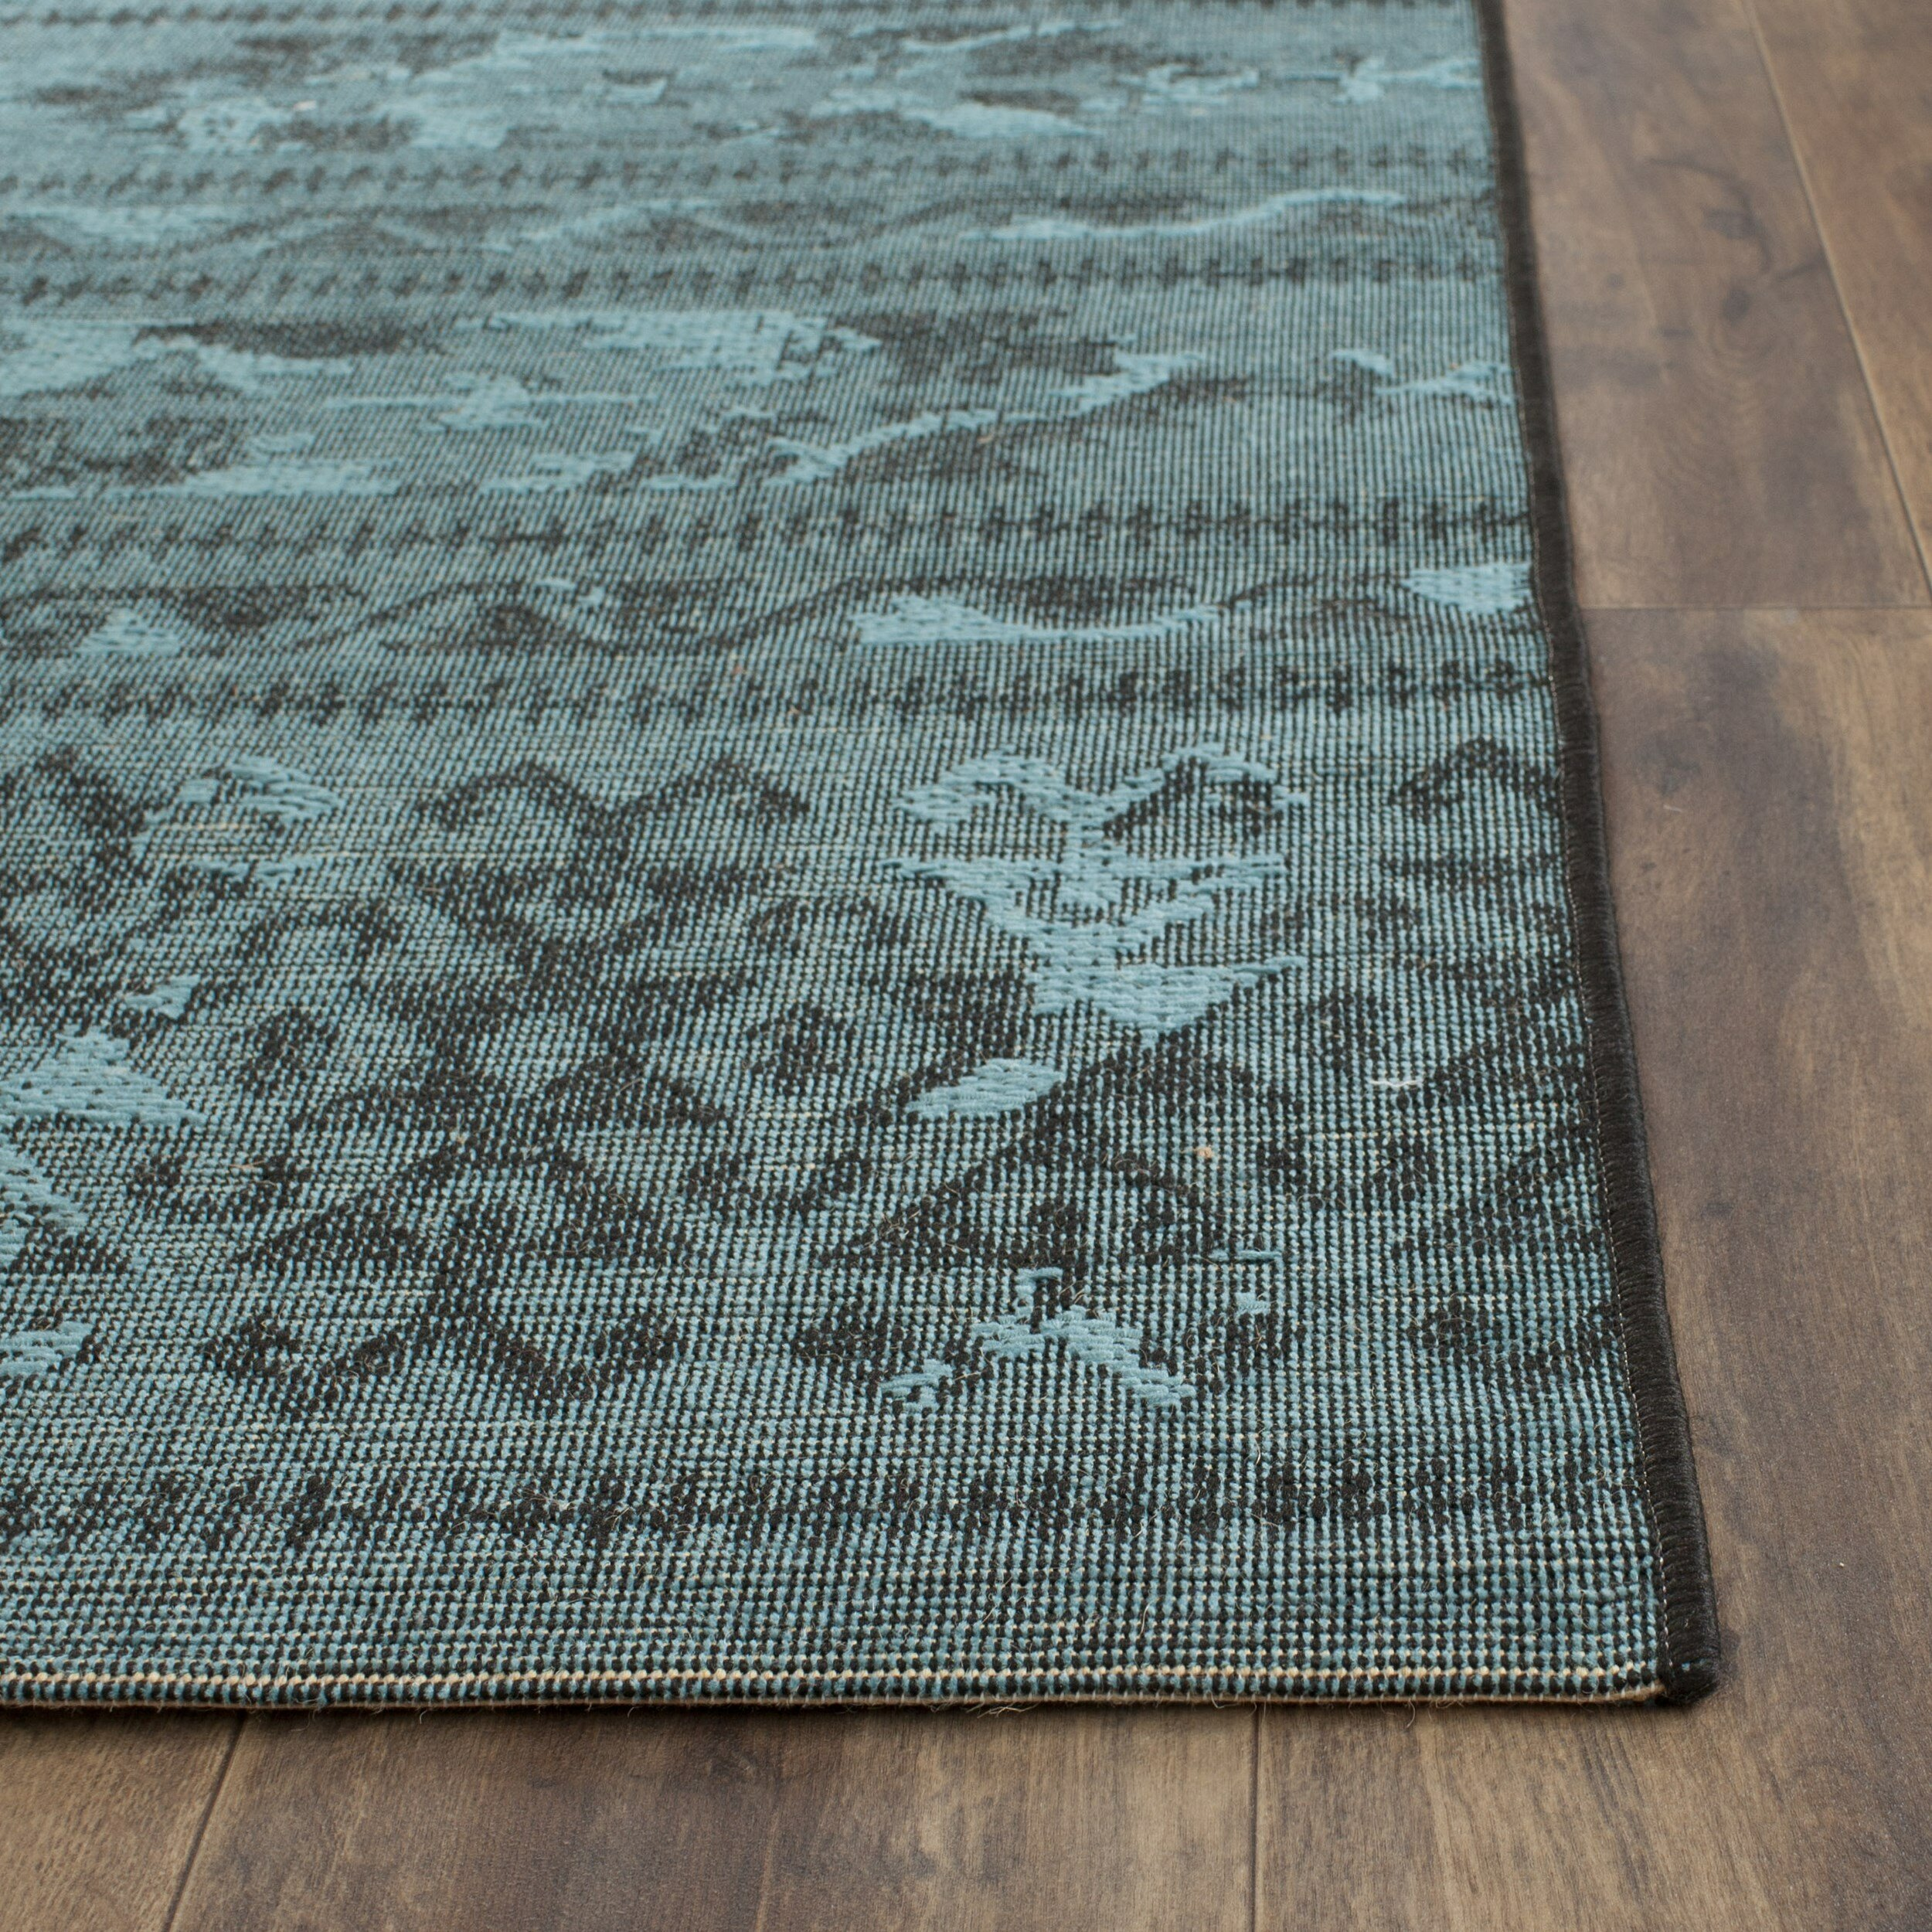 Bungalow Rose Saleya Turquoise Area Rug Reviews: Bungalow Rose Port Laguerre Black & Turquoise Velvety Area